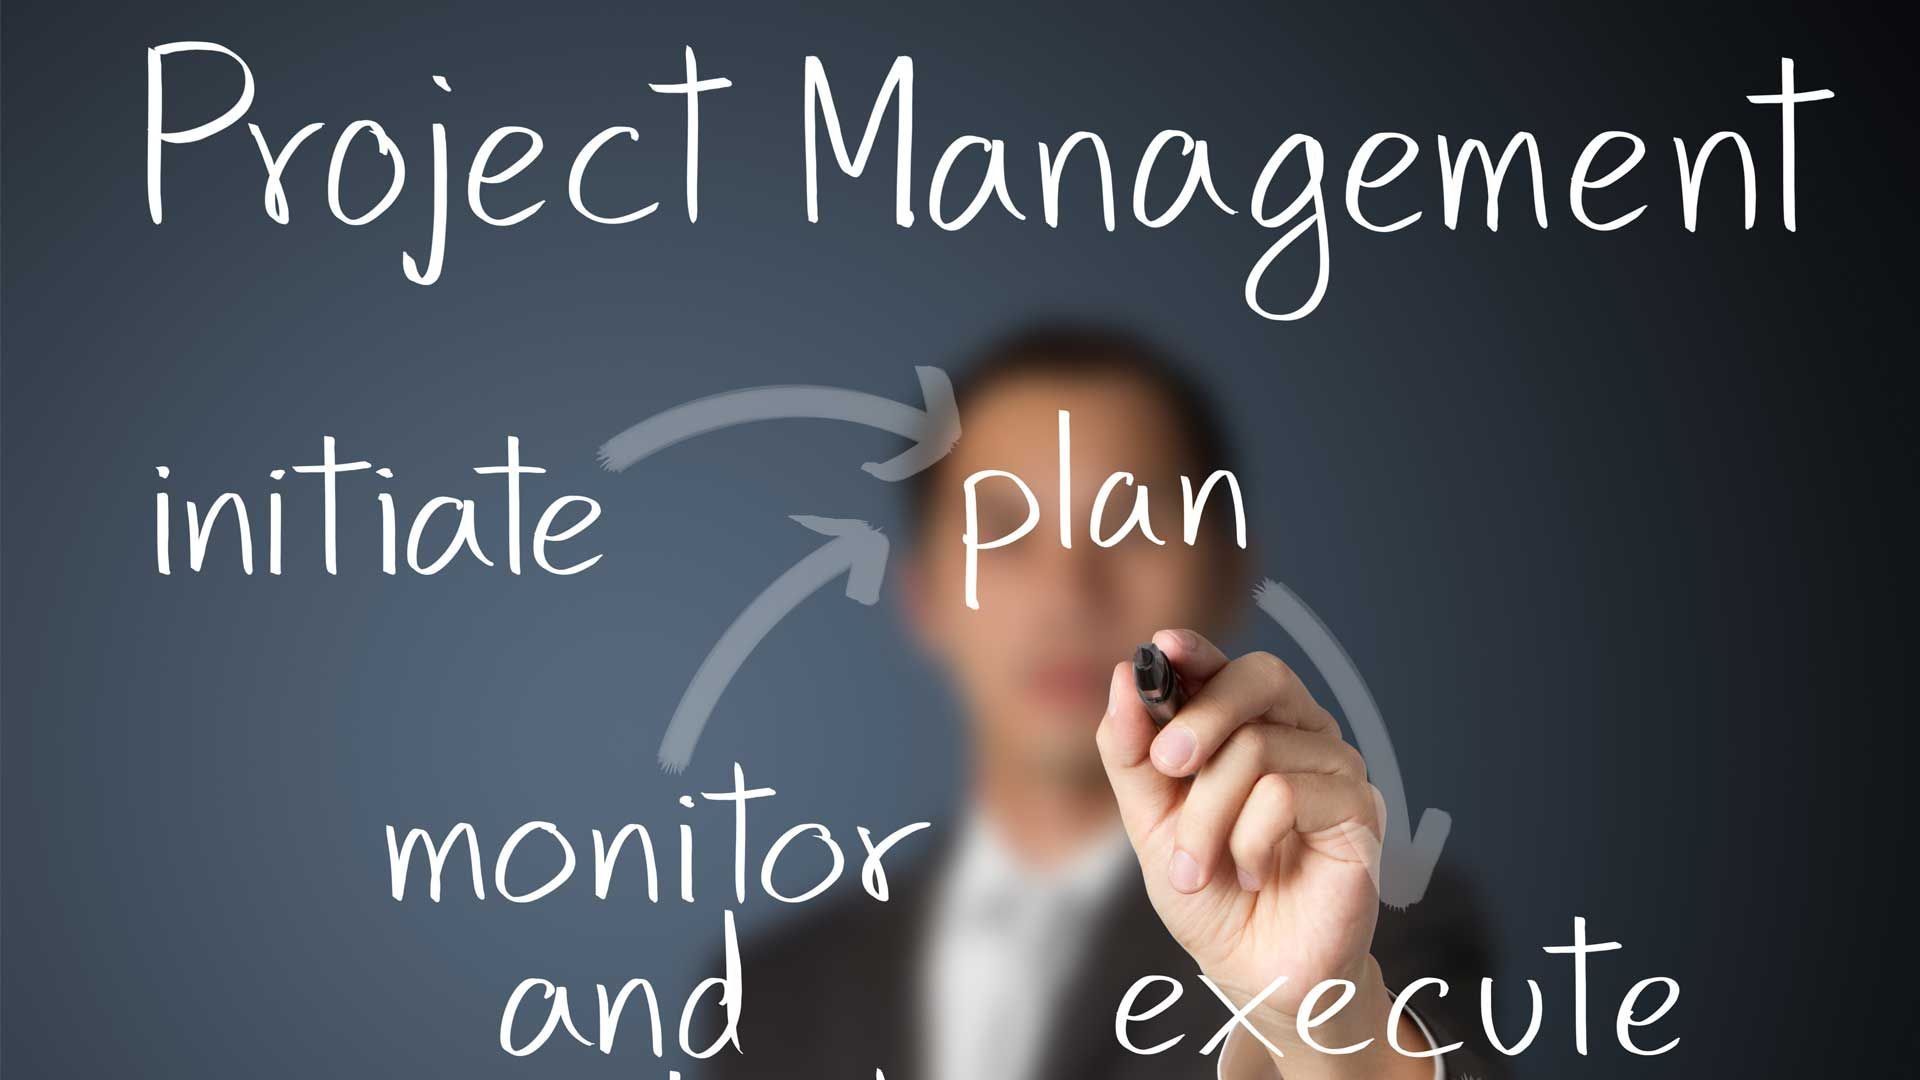 Pin by Mike Peck on Job Project risk management, Project